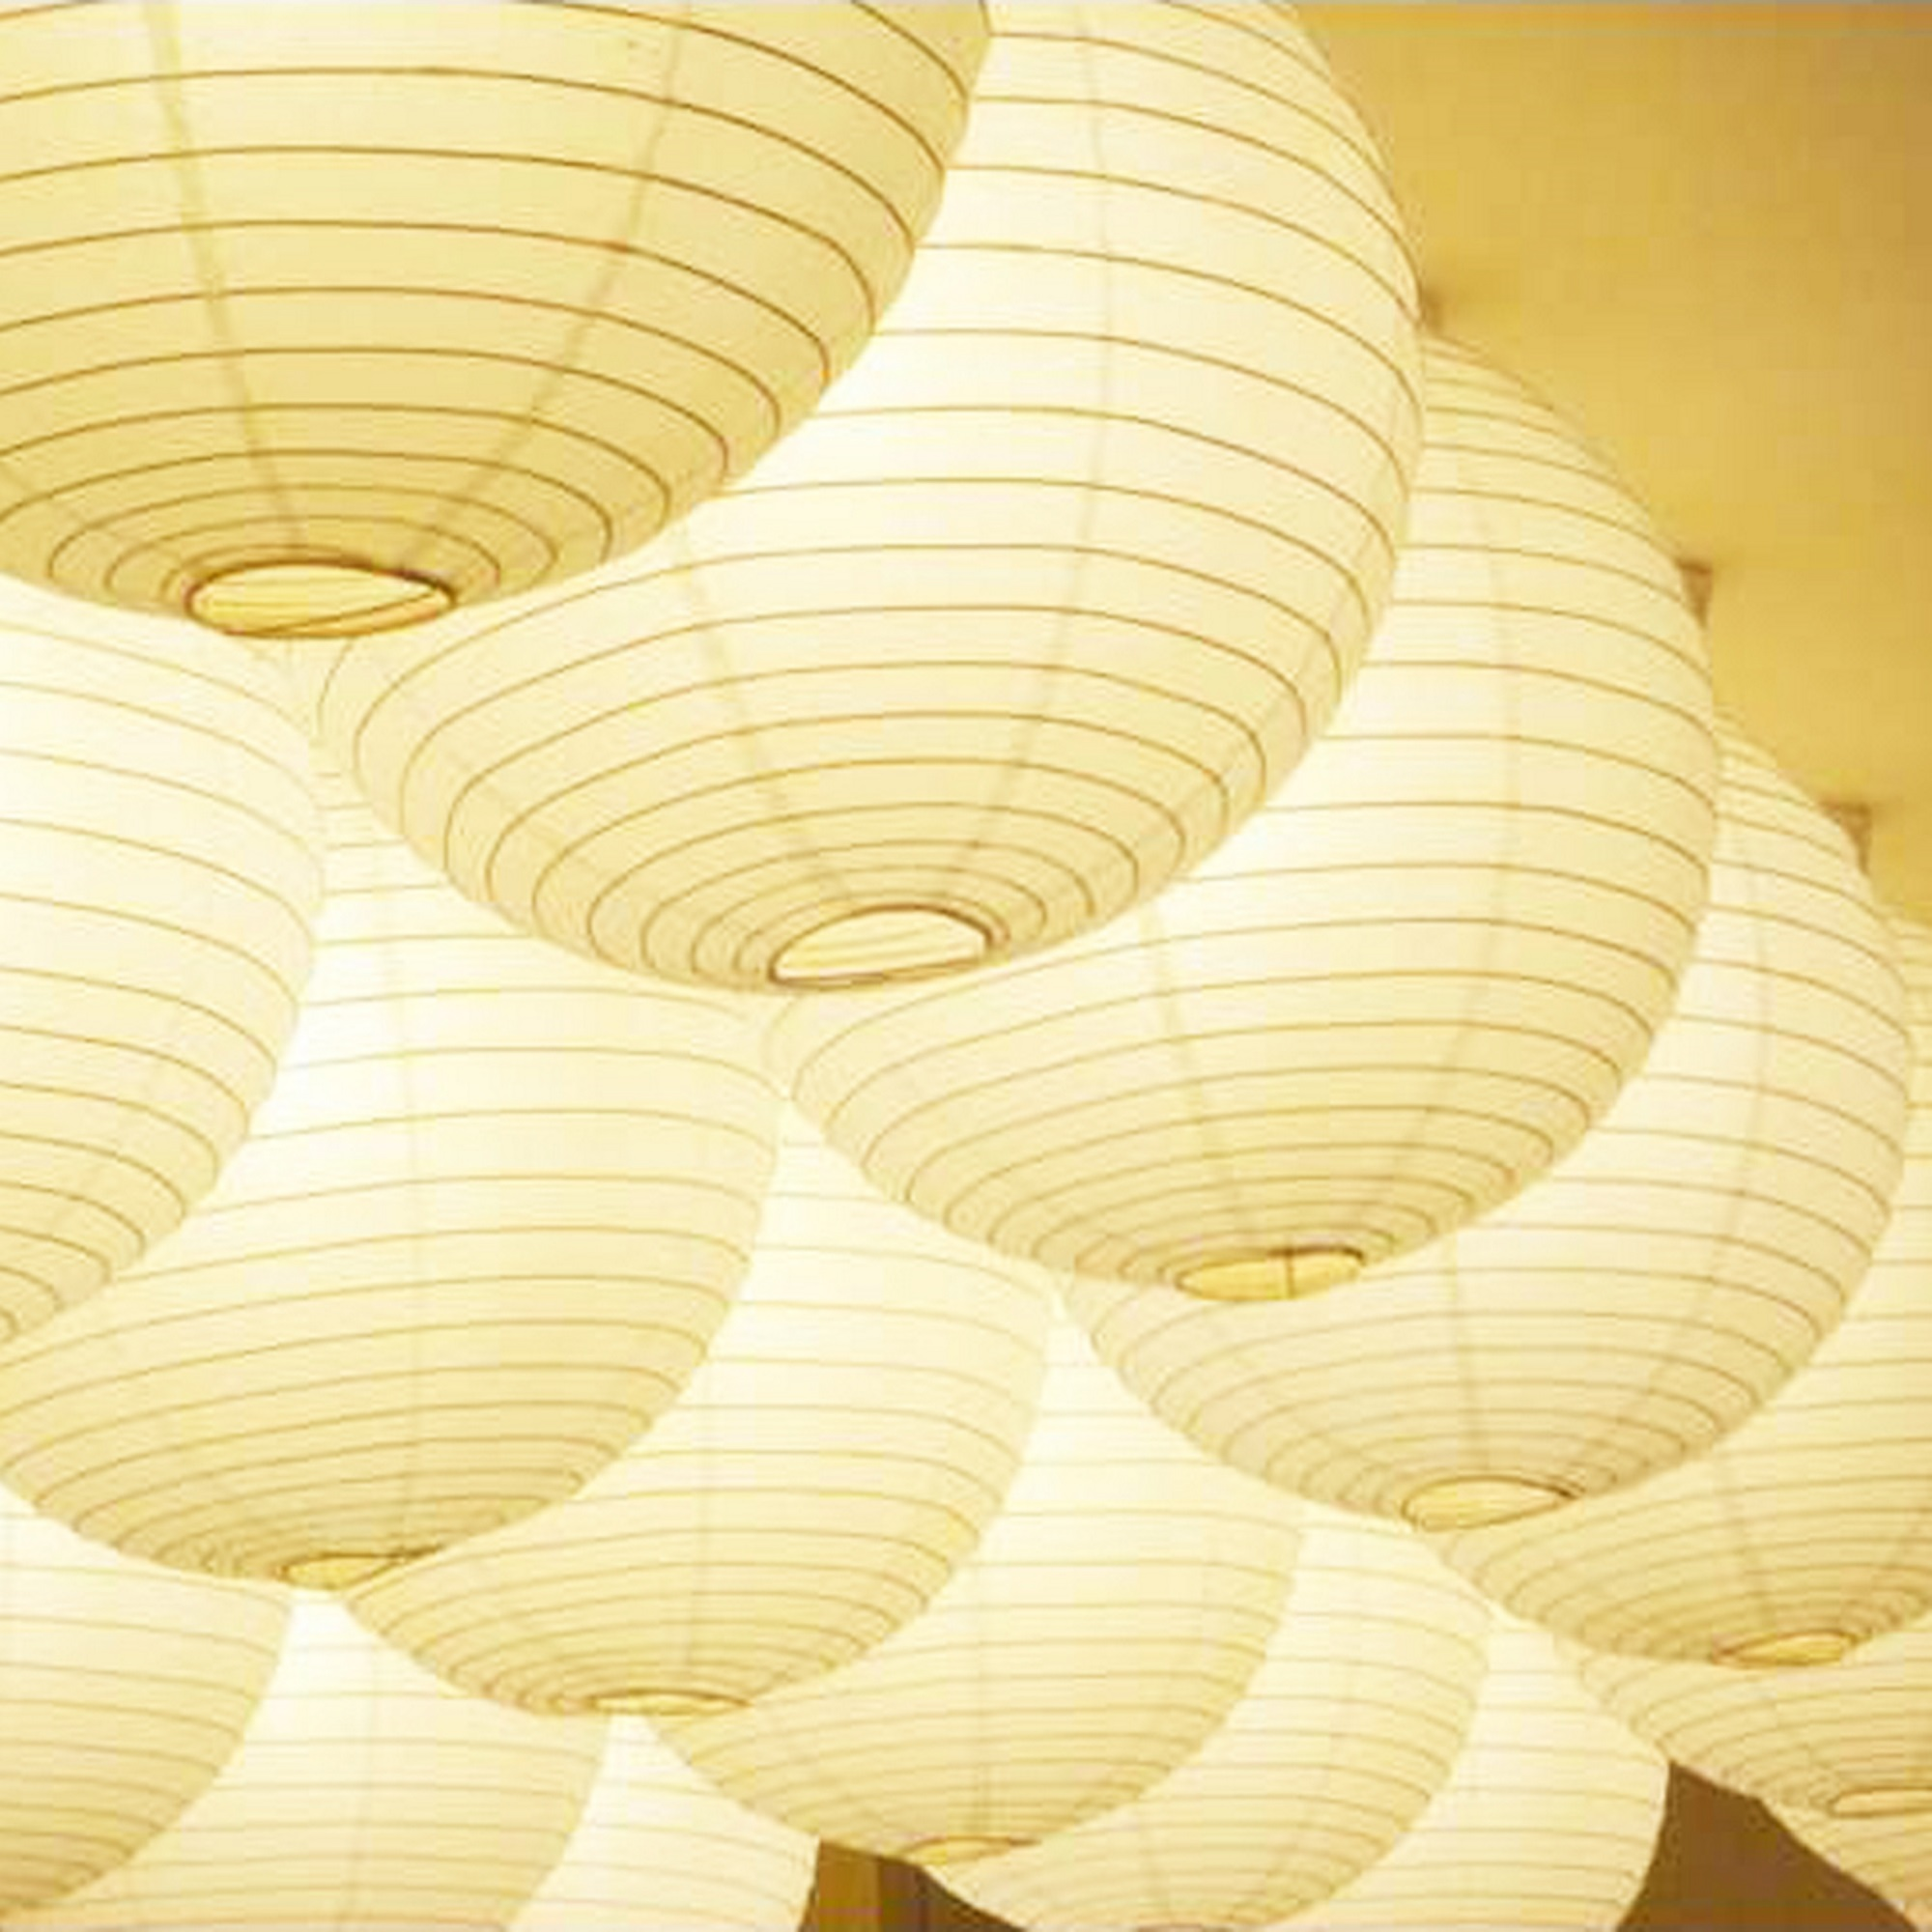 [Novelty Place] Round Wedding White Paper Lanterns Decorations - 8 inch (10 Pack)